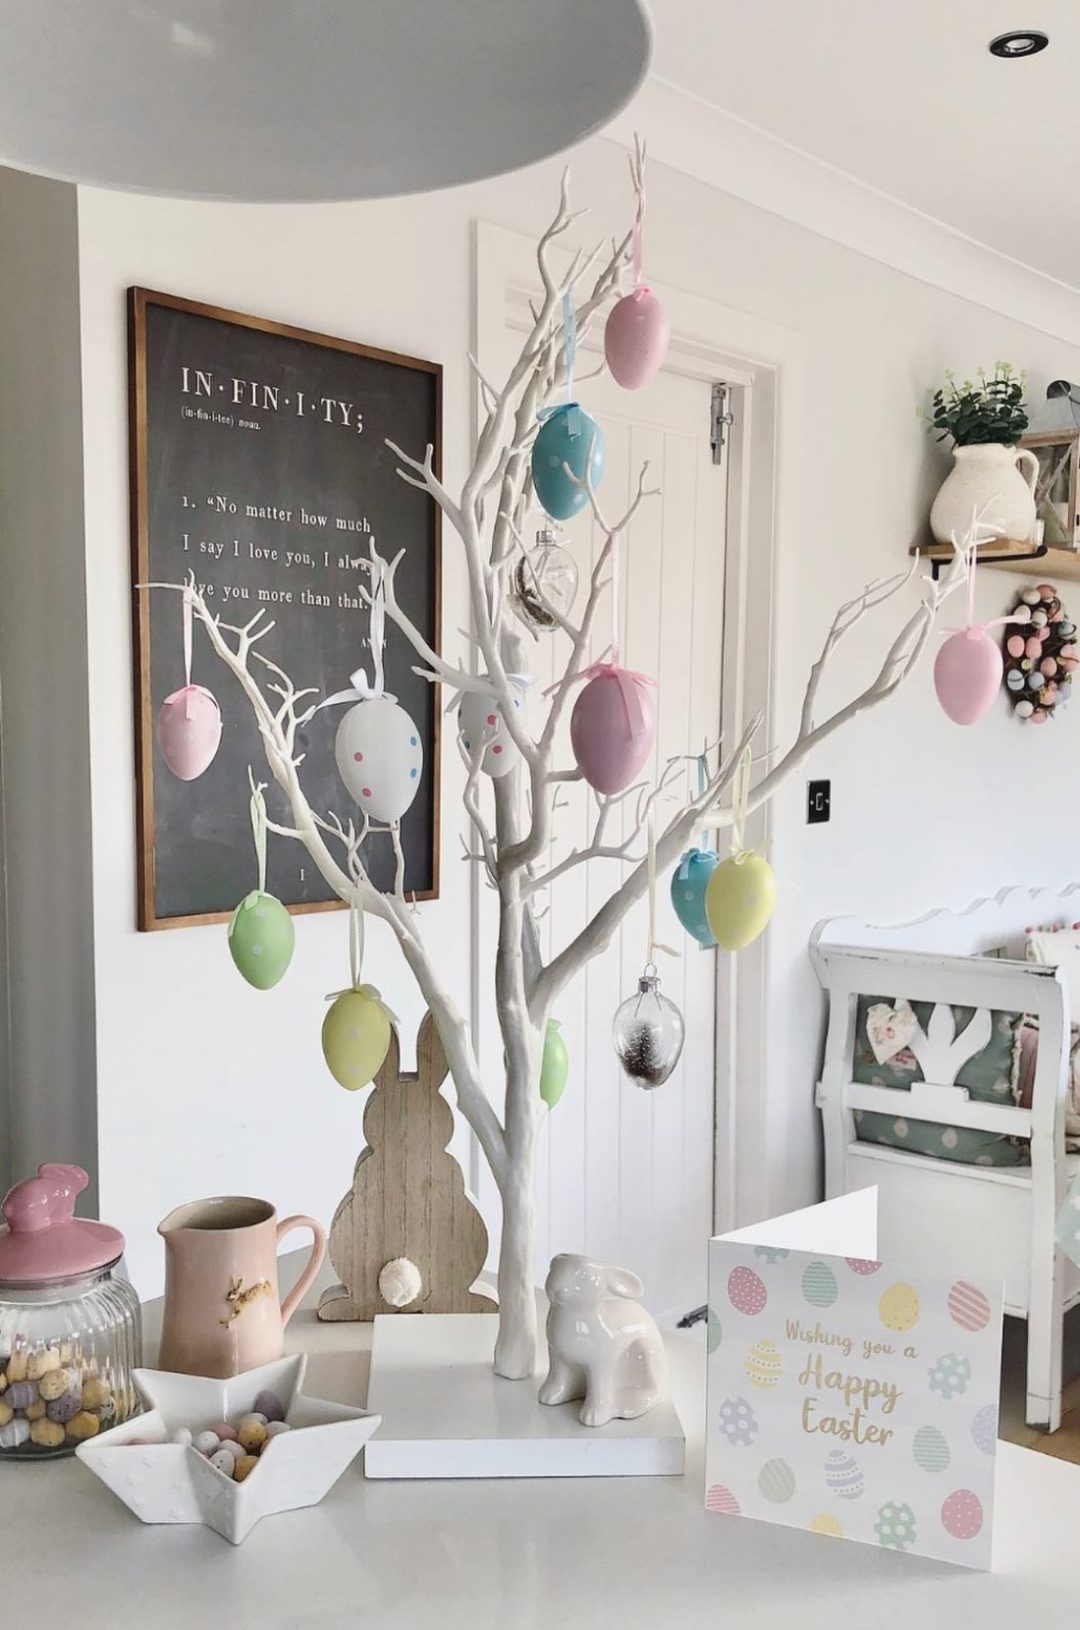 White modern Easter tree decorations with eggs